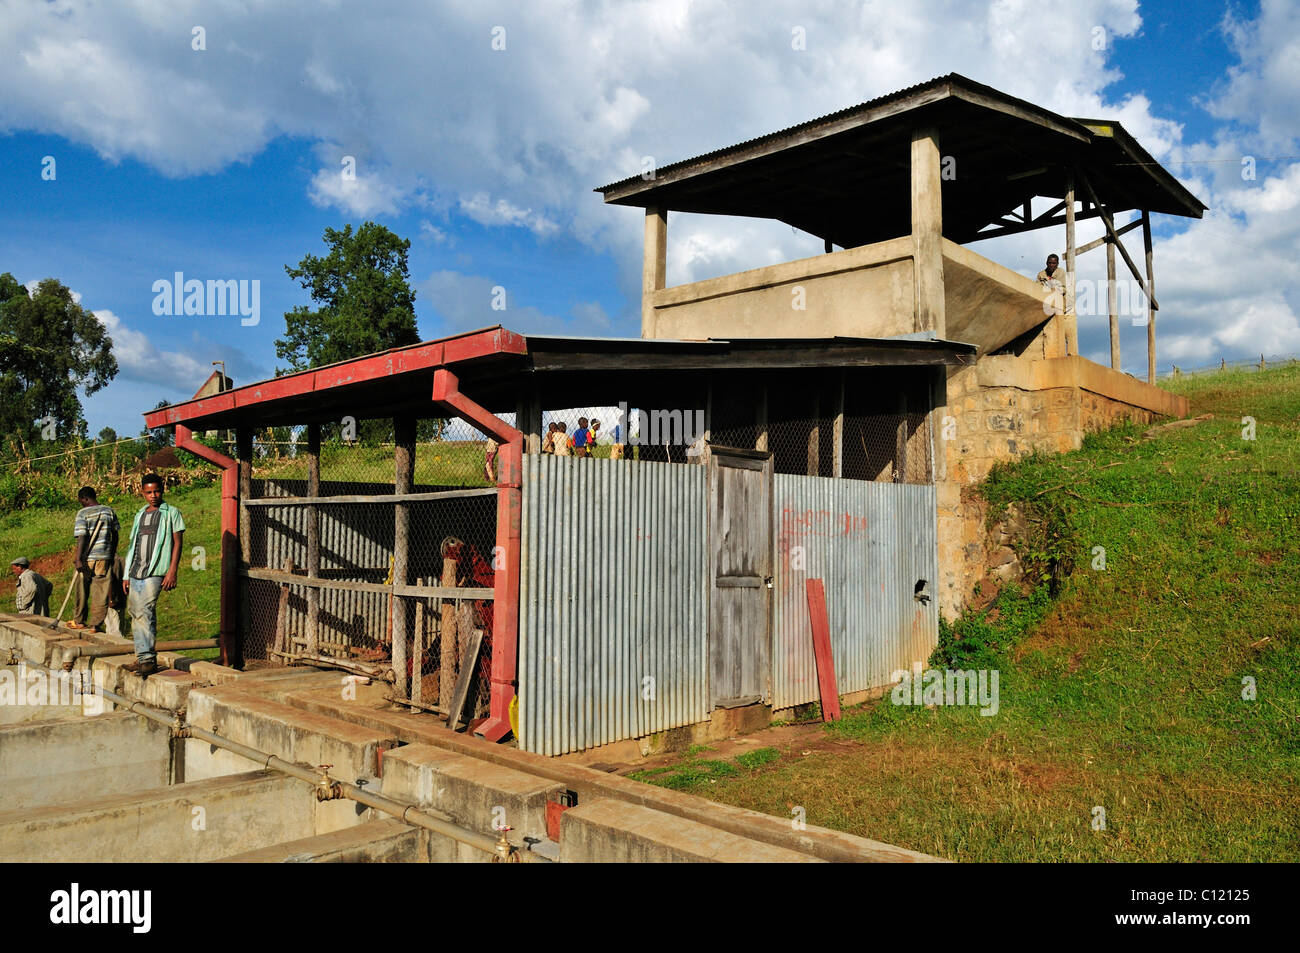 Cleaning and processing facility for coffee beans, Jimma, Kaffa Region, Oromiya, Ethiopia, Africa - Stock Image